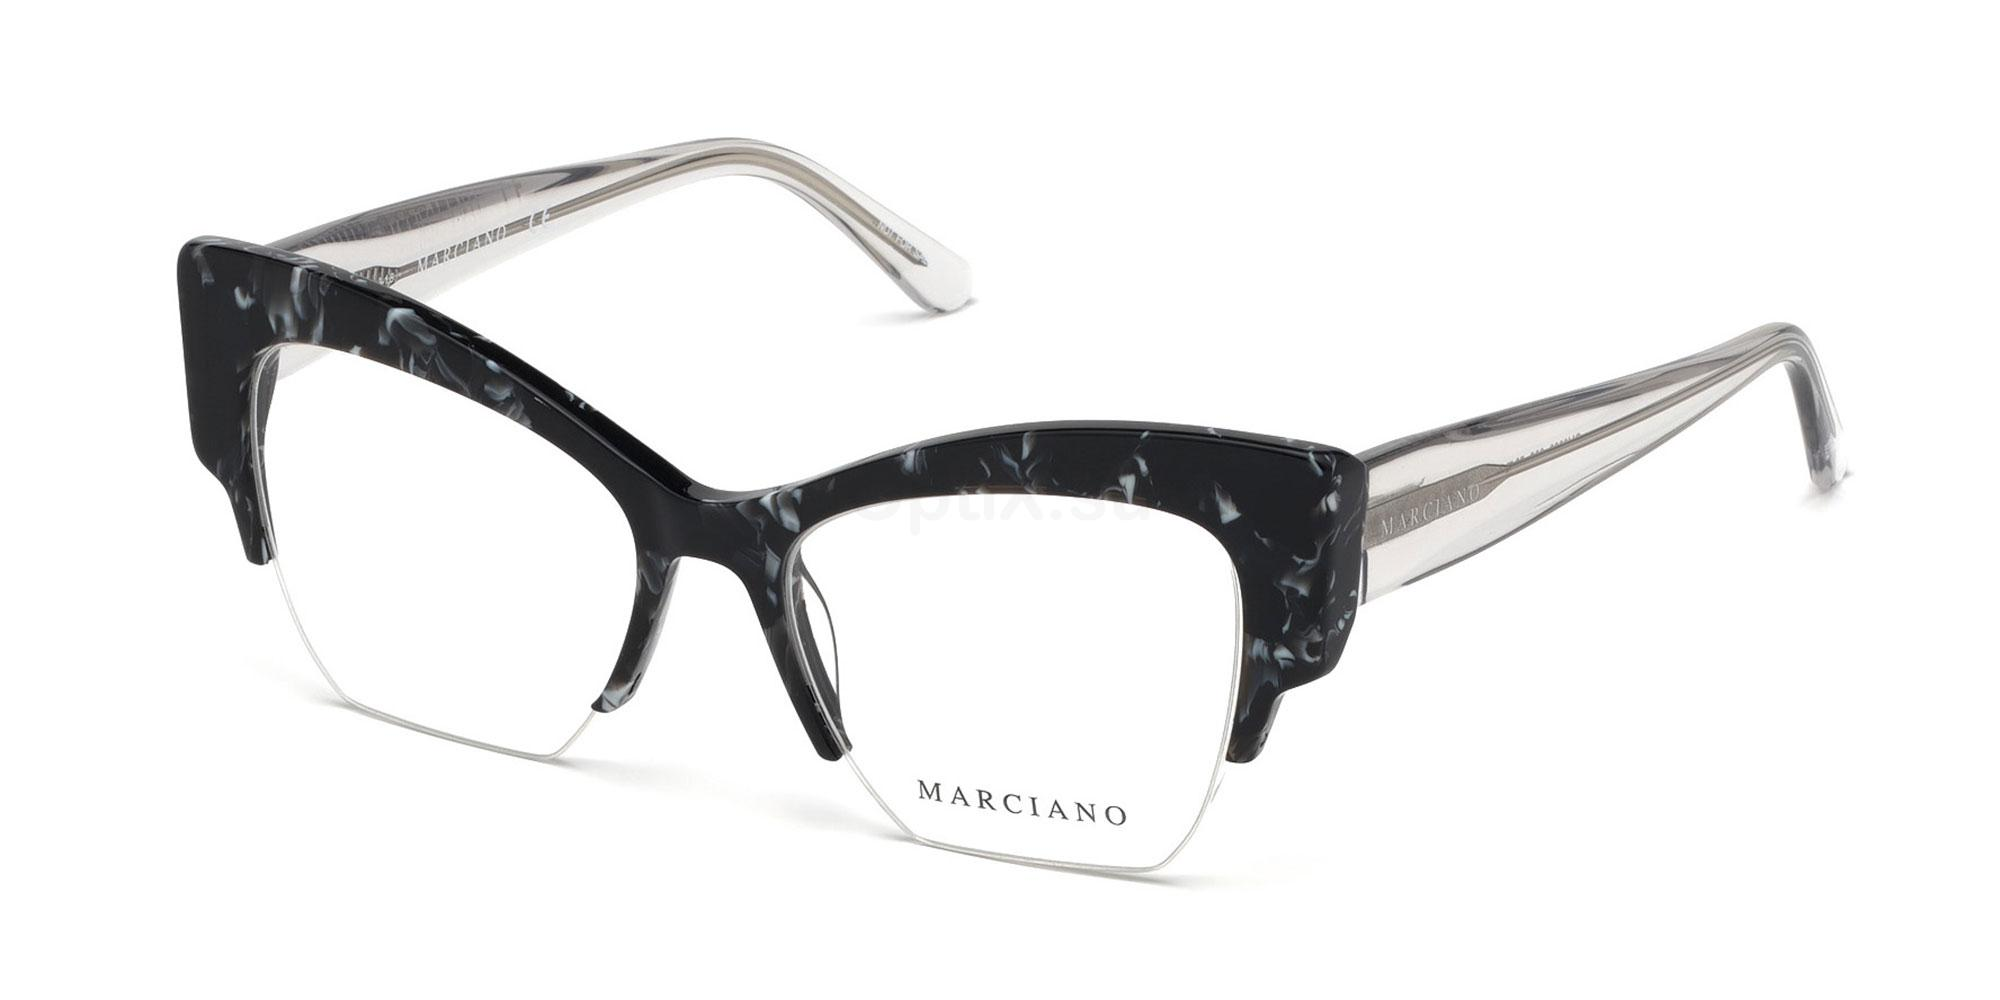 005 GM0329 Glasses, Guess by Marciano